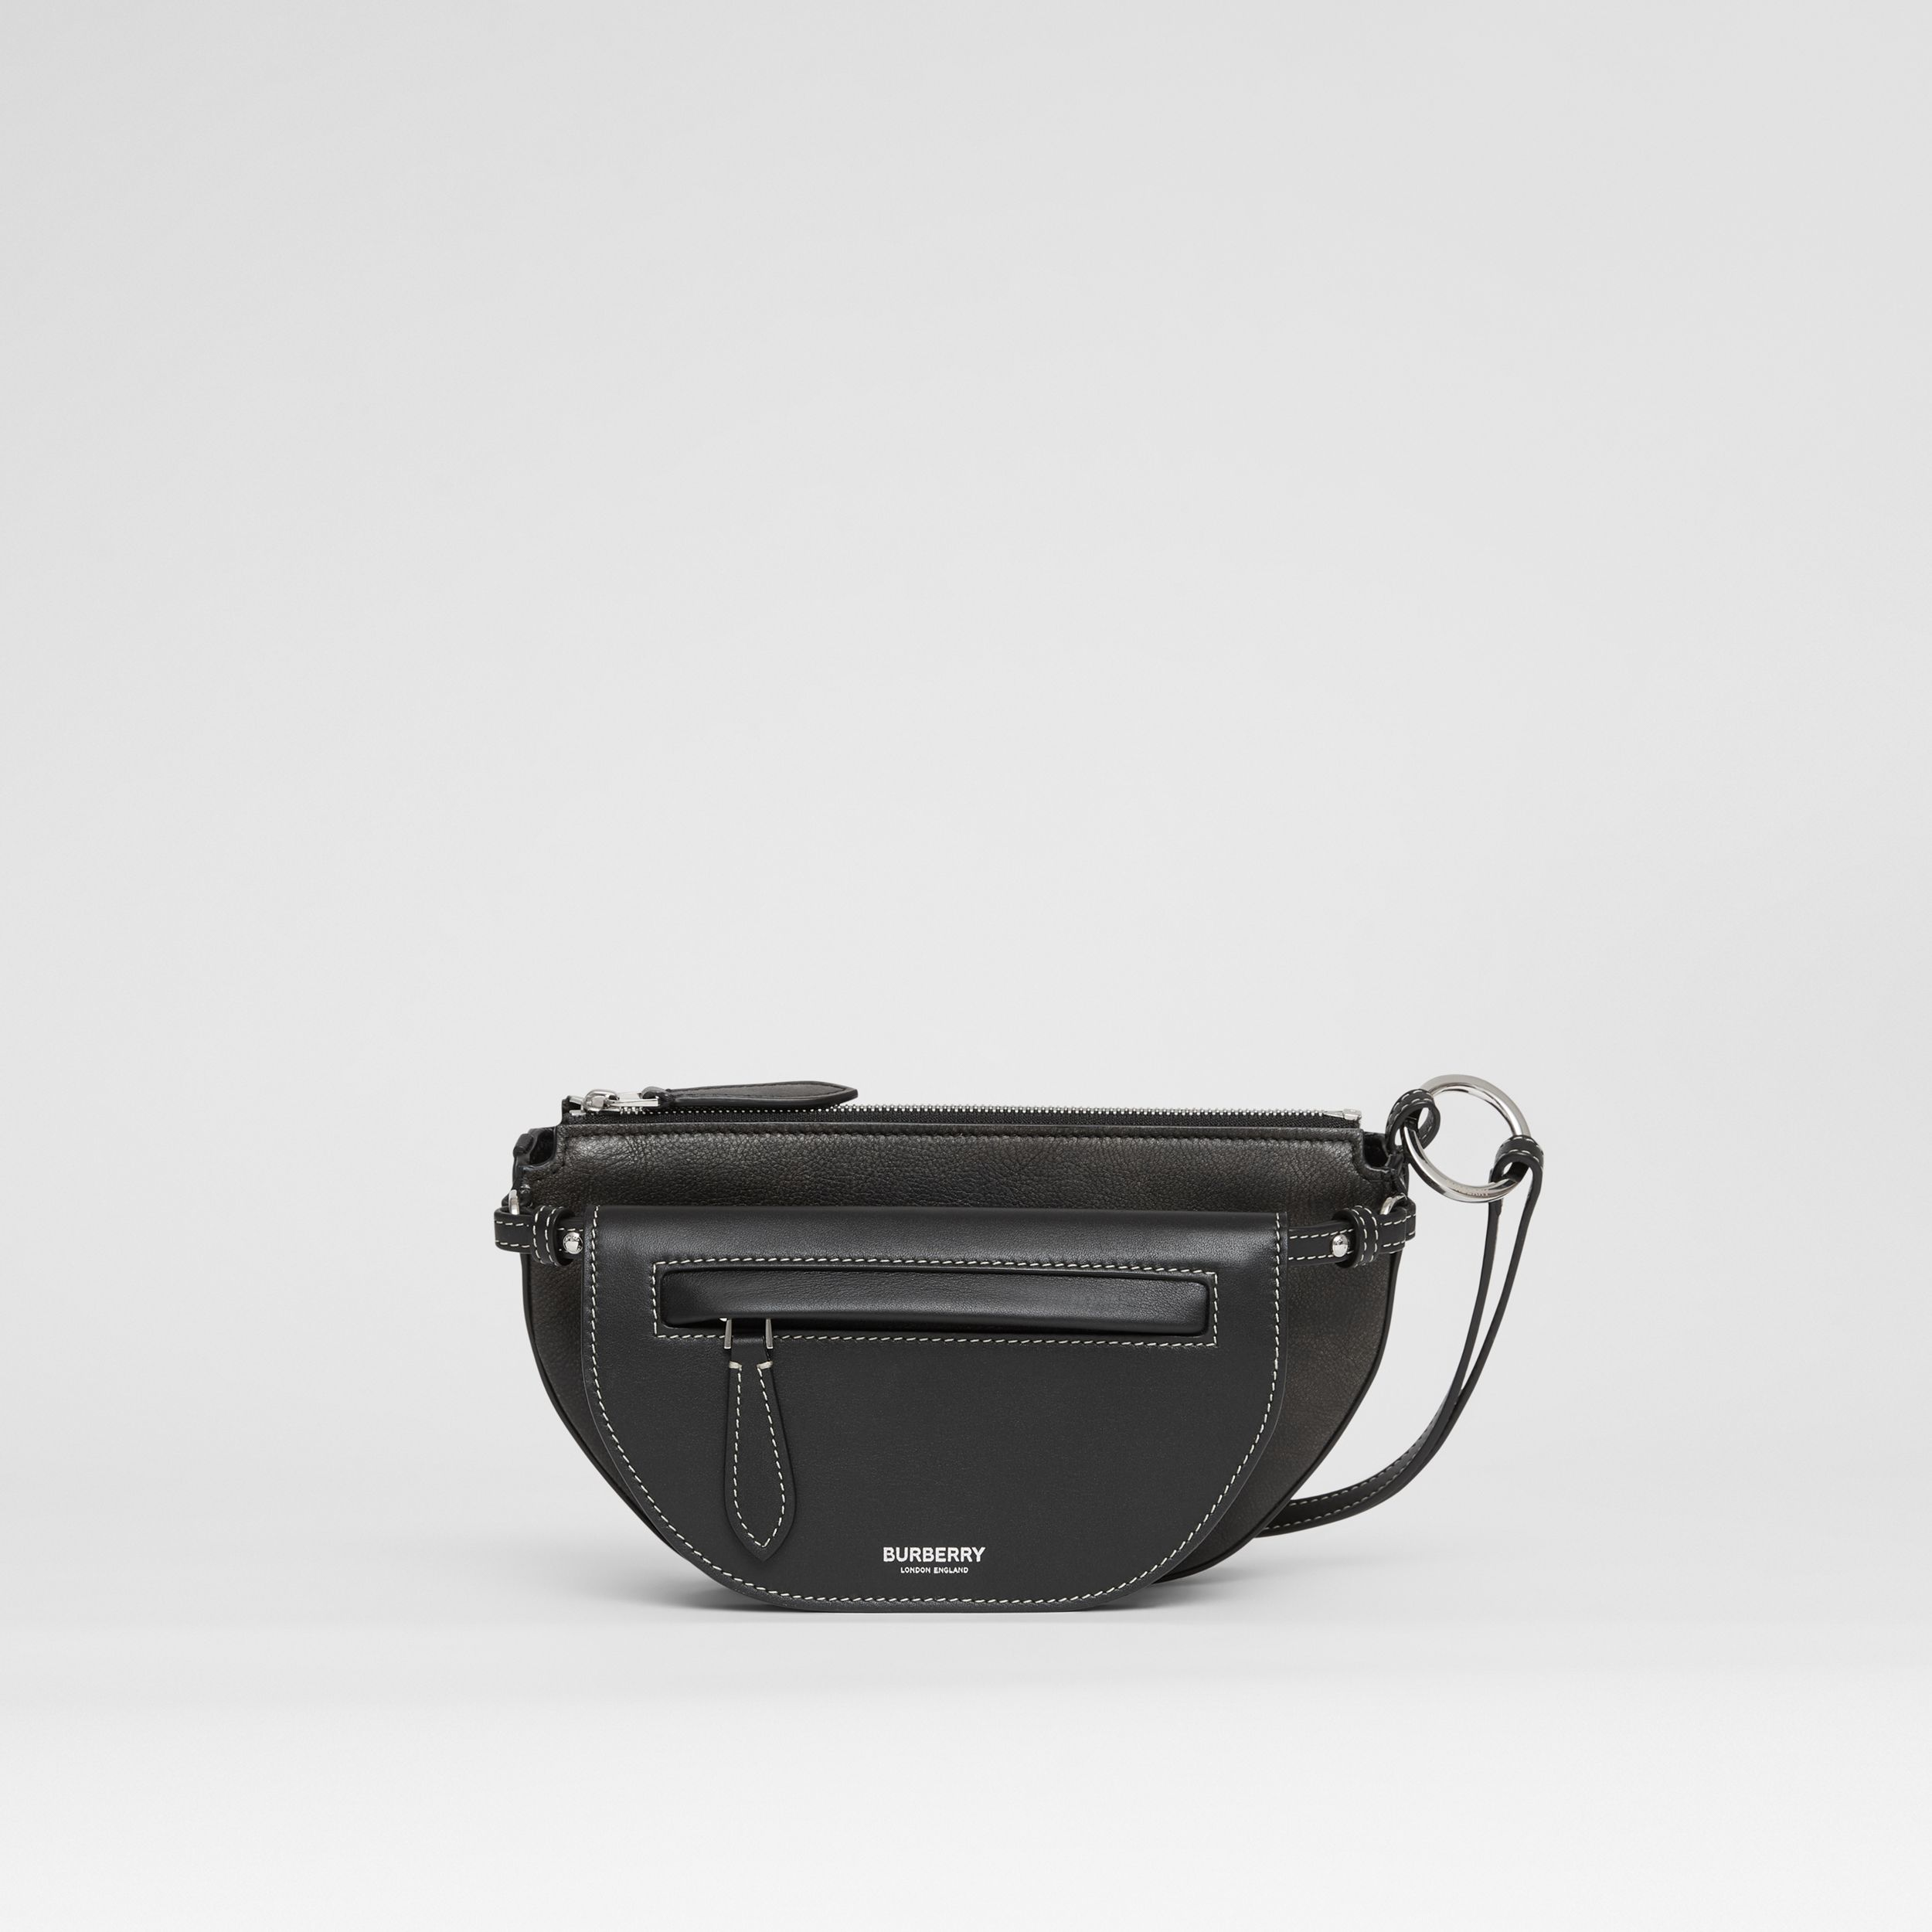 Mini Leather Double Olympia Bag in Black - Women | Burberry - 1